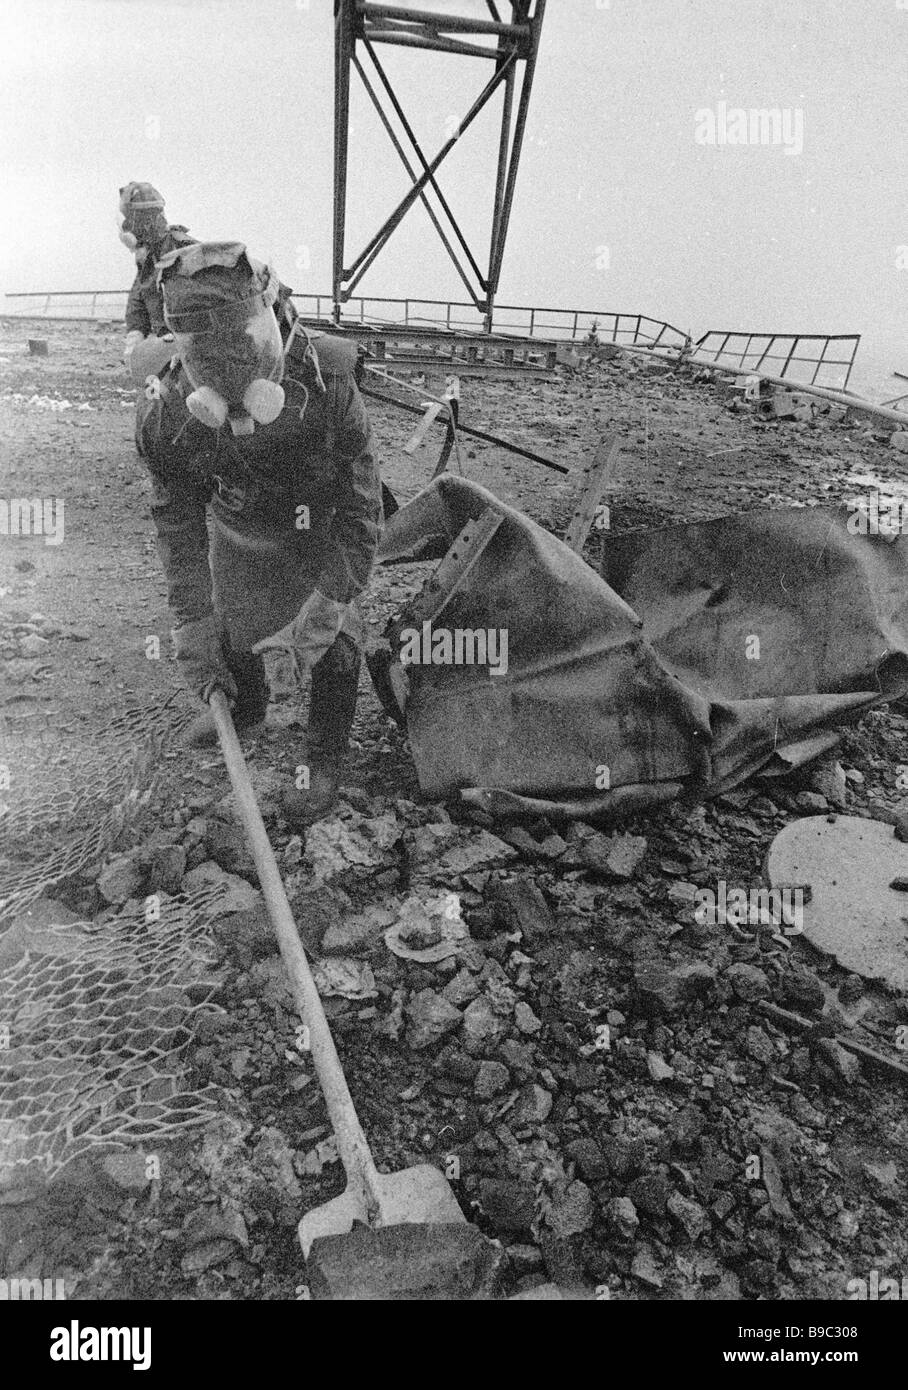 People clean the roof of the damaged reactor after the Chernobyl NPP disaster - Stock Image